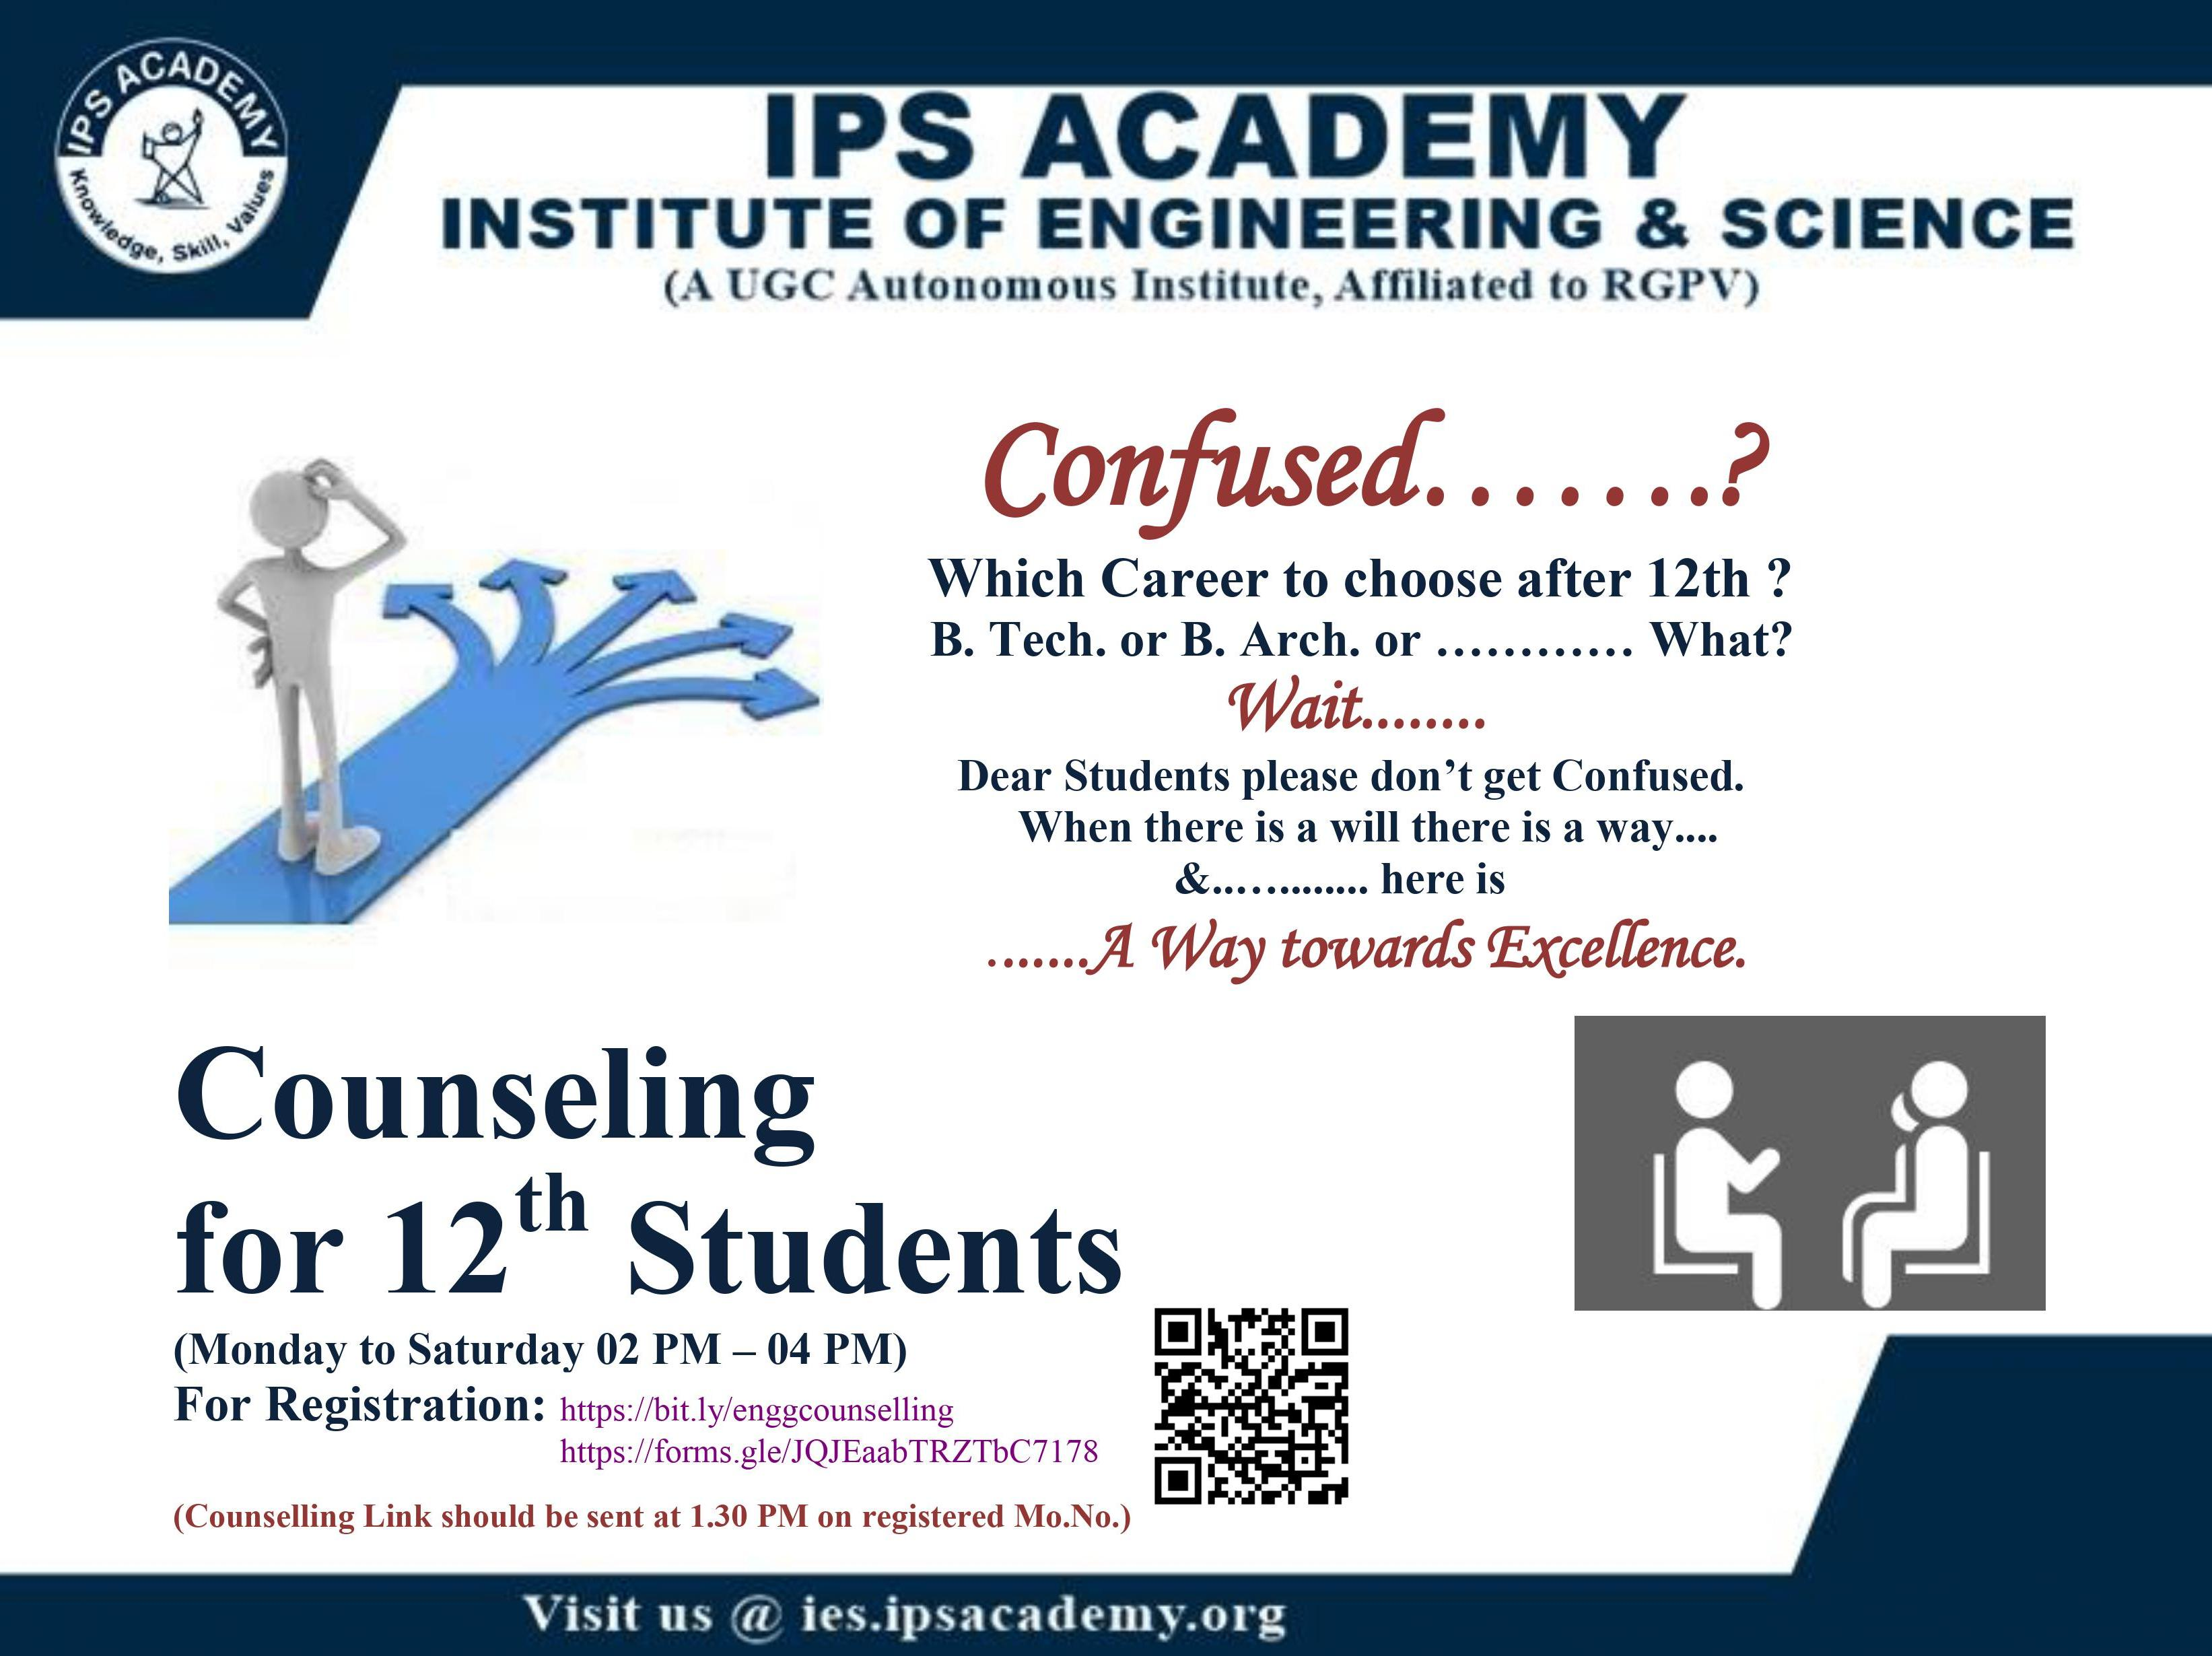 Counselling 2021 Image